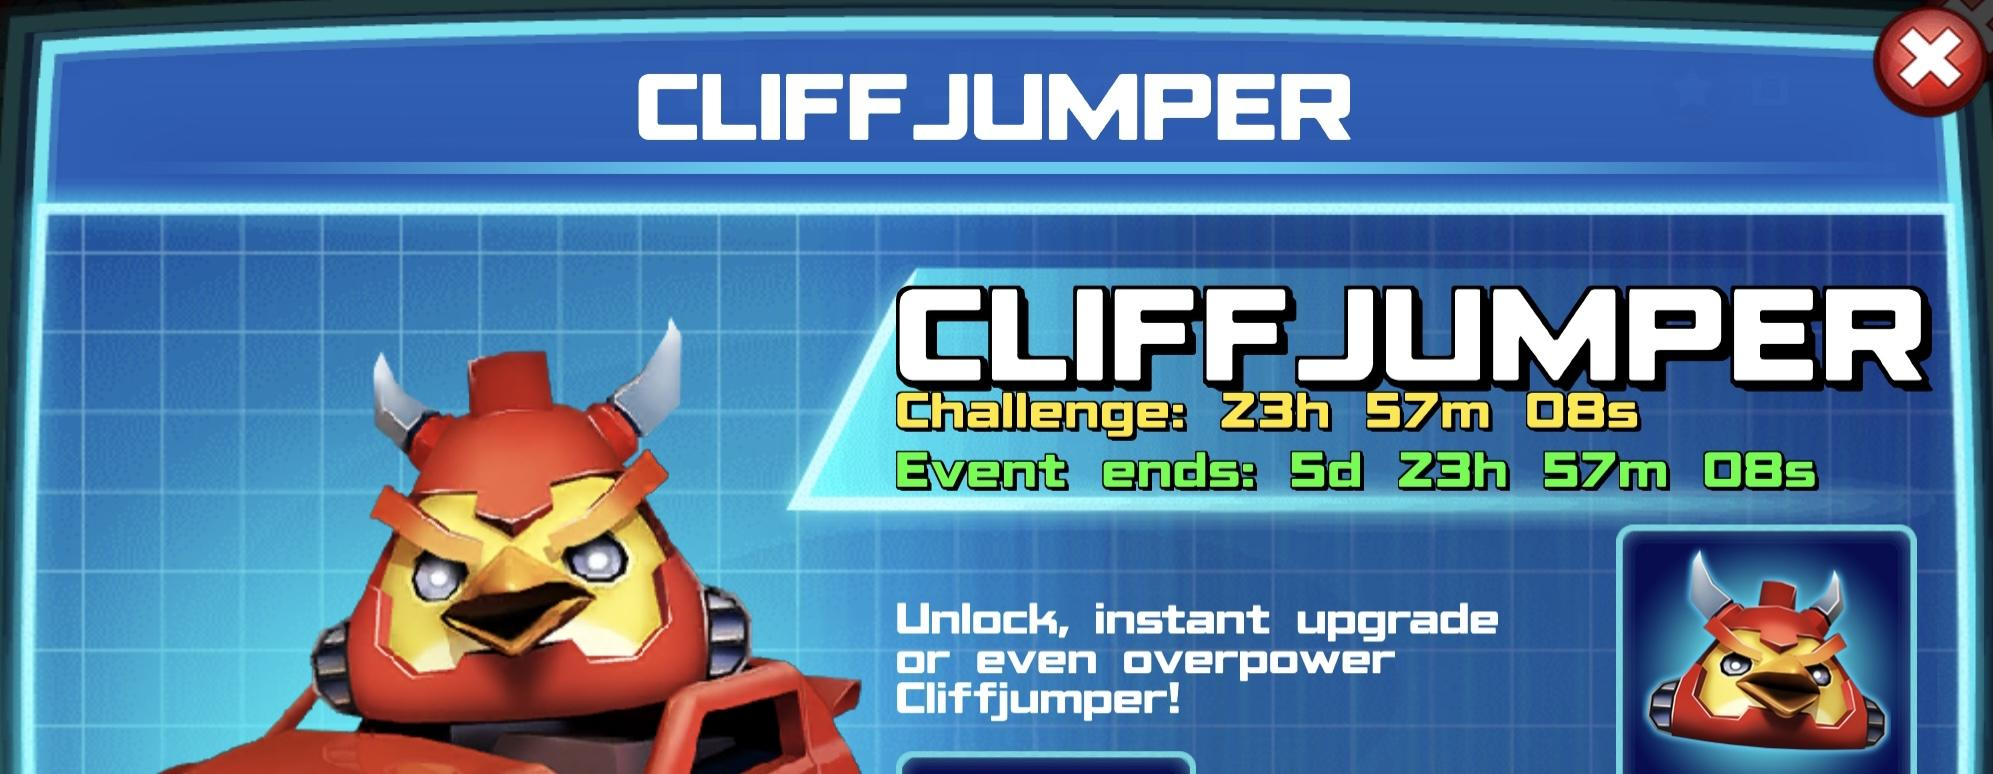 The event banner for Cliffjumper